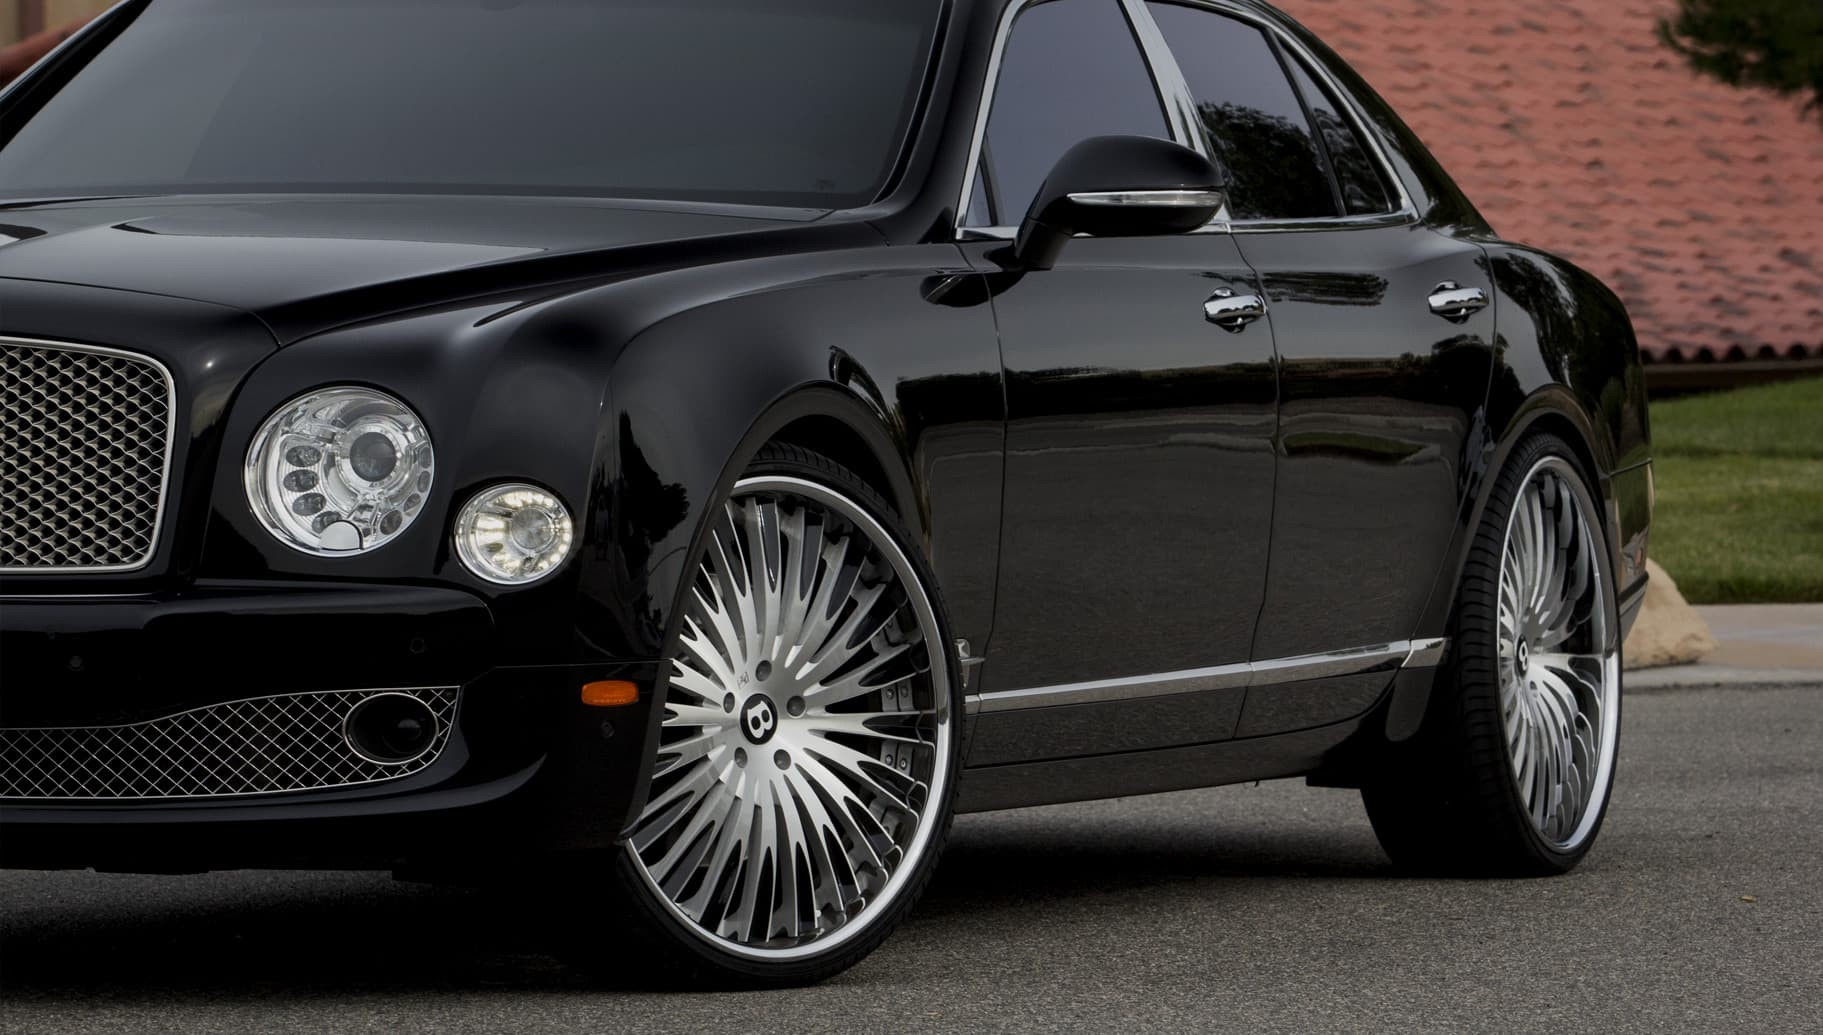 Custom LF-734 on the Bentley Mulsanne.